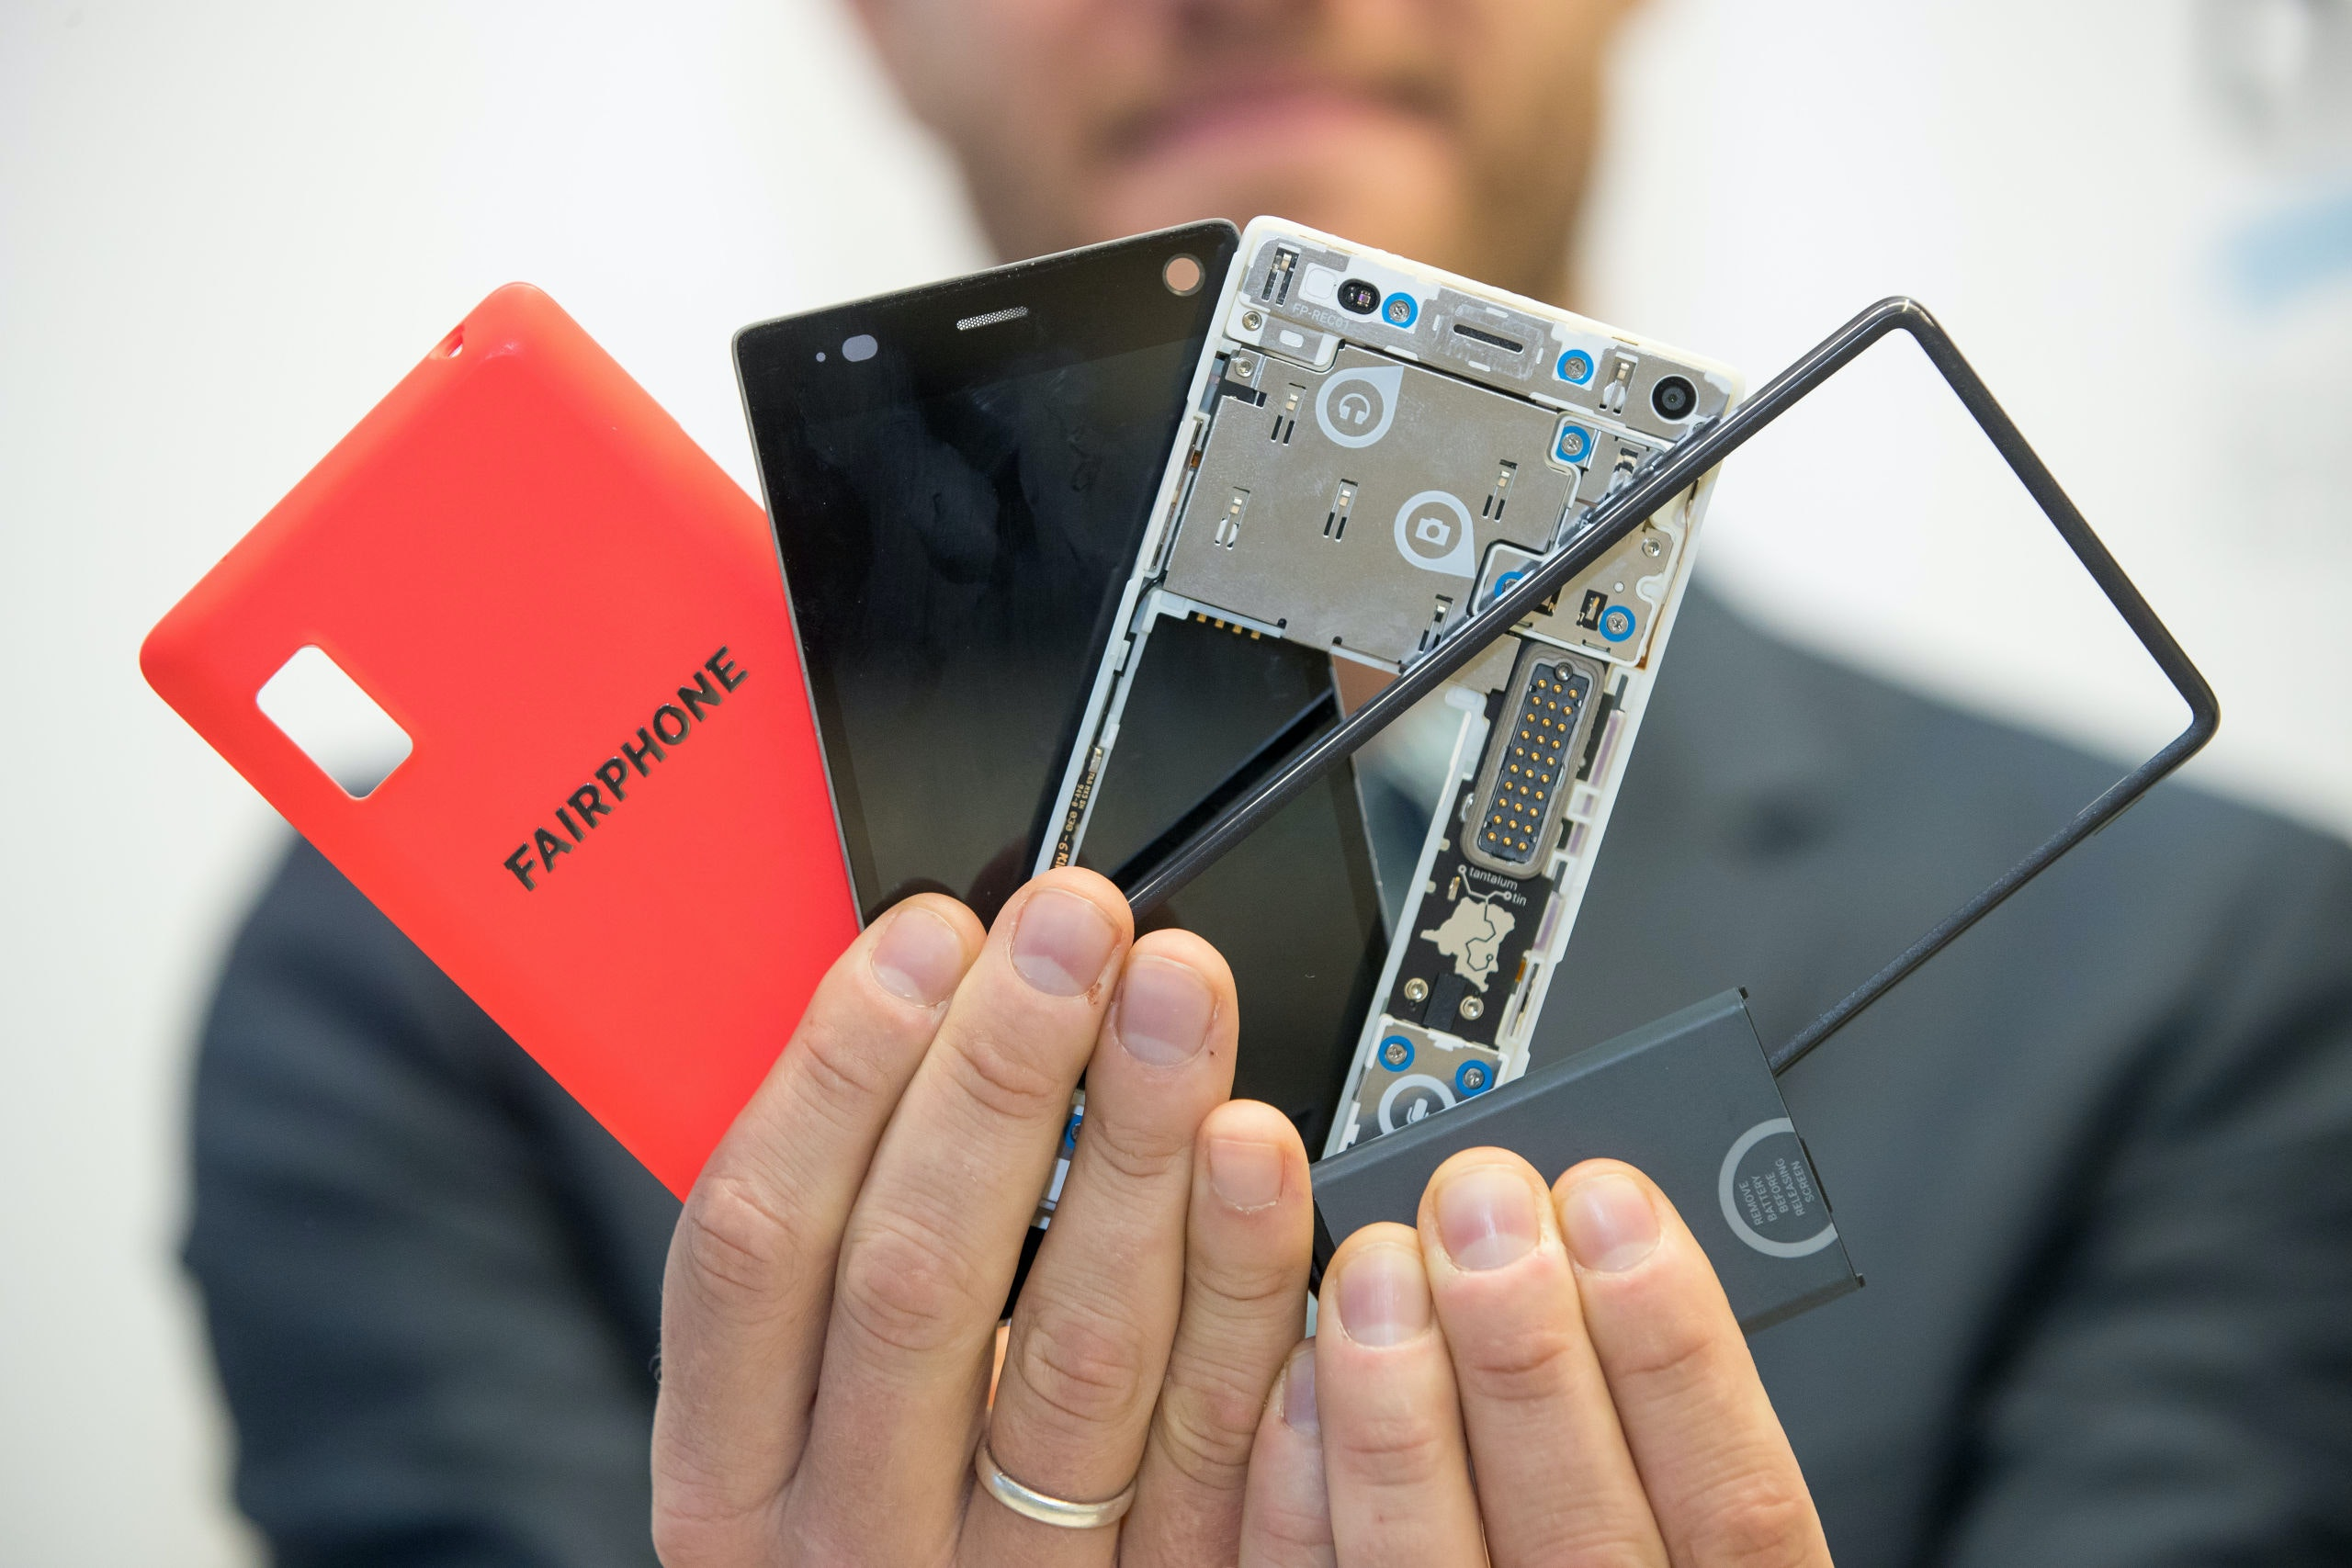 Bas van Abel, winner of the German Environment Award 2016 ('Deutscher Umweltpreis'), speaking about the 'Fairphone' during a press conference in Wuerzburg, Germany, 30 October 2016. The Dutch company was awarded for production smartphones which create as little environmental damage as possible and are produced under fair working conditions. PHOTO: DANIEL KARMANN/dpa